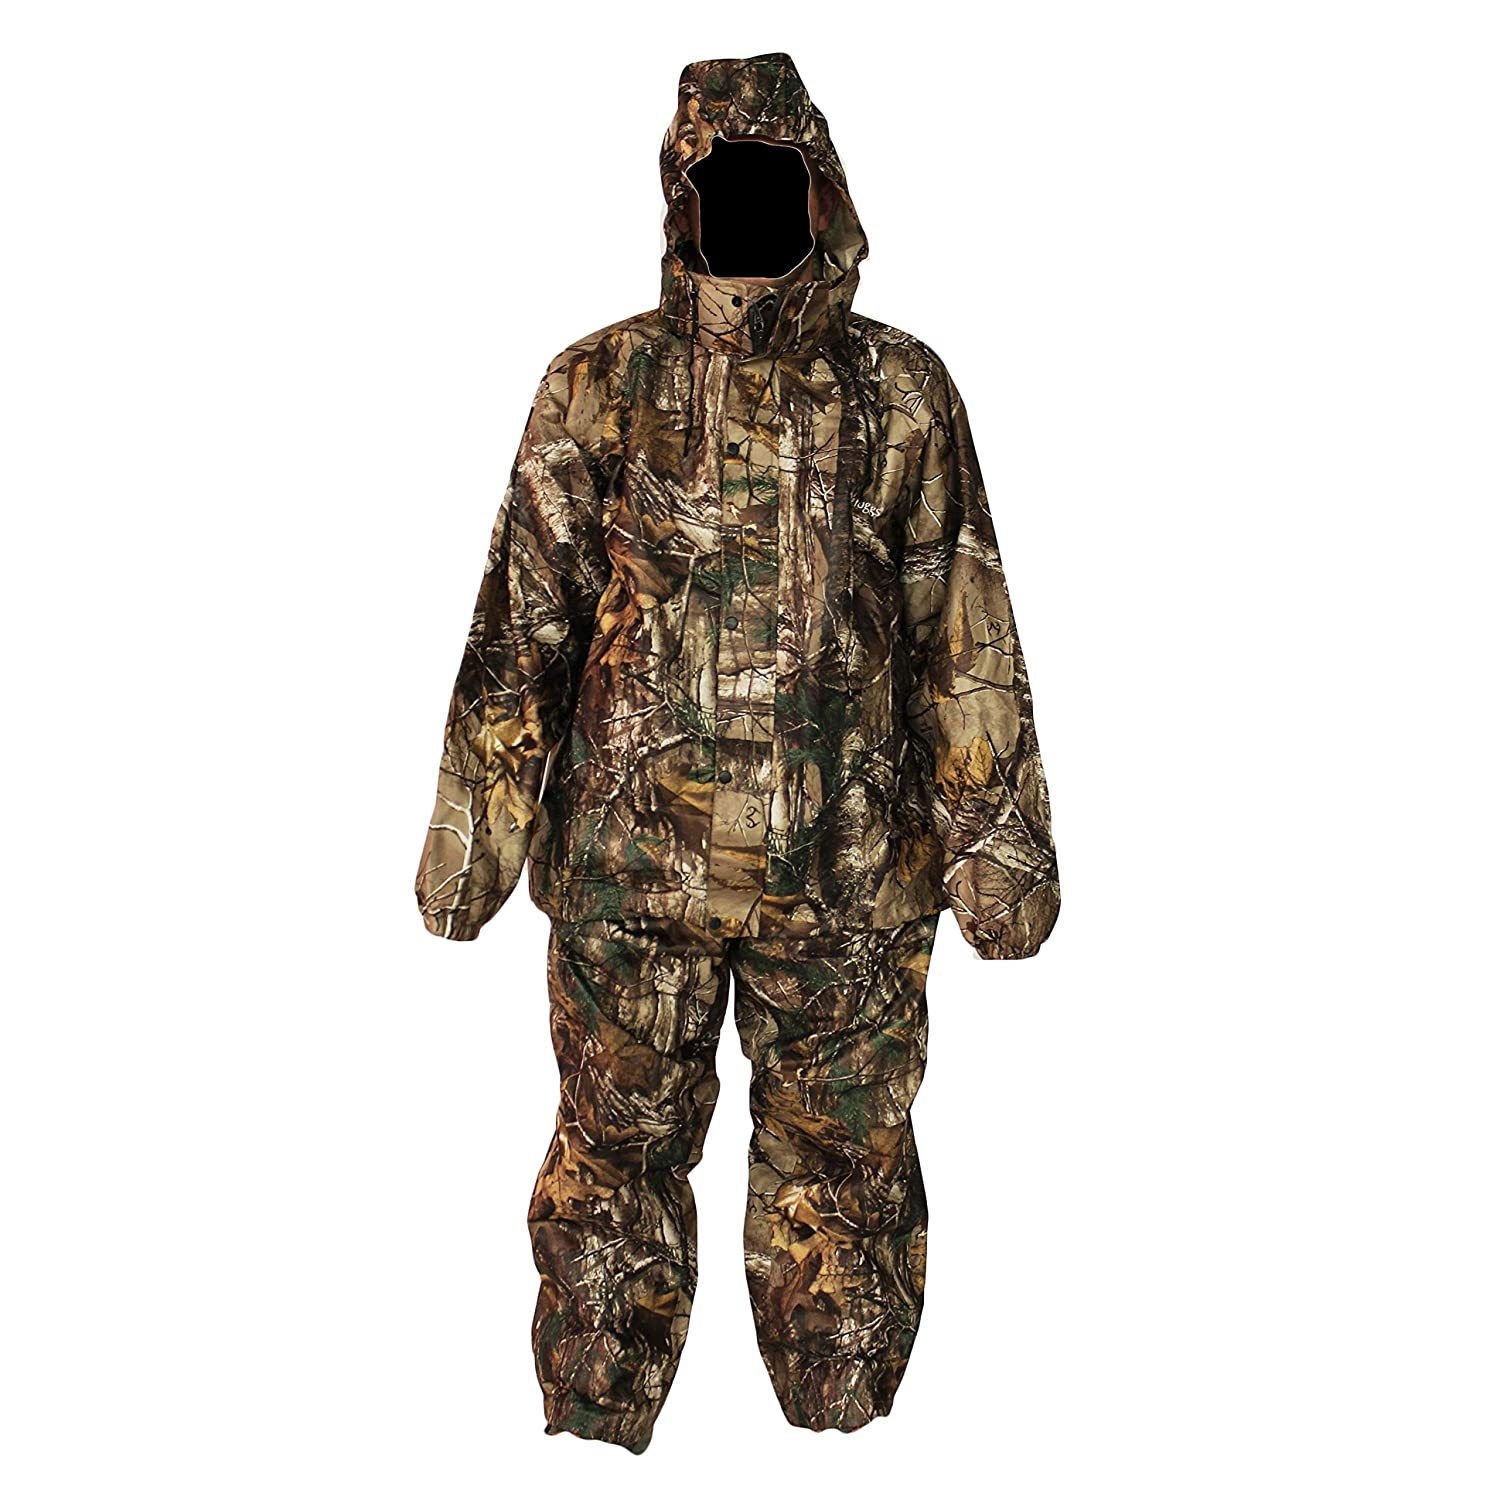 Frogg Toggs AllSport Suit Camo Real Tree XL AS1310-54XL